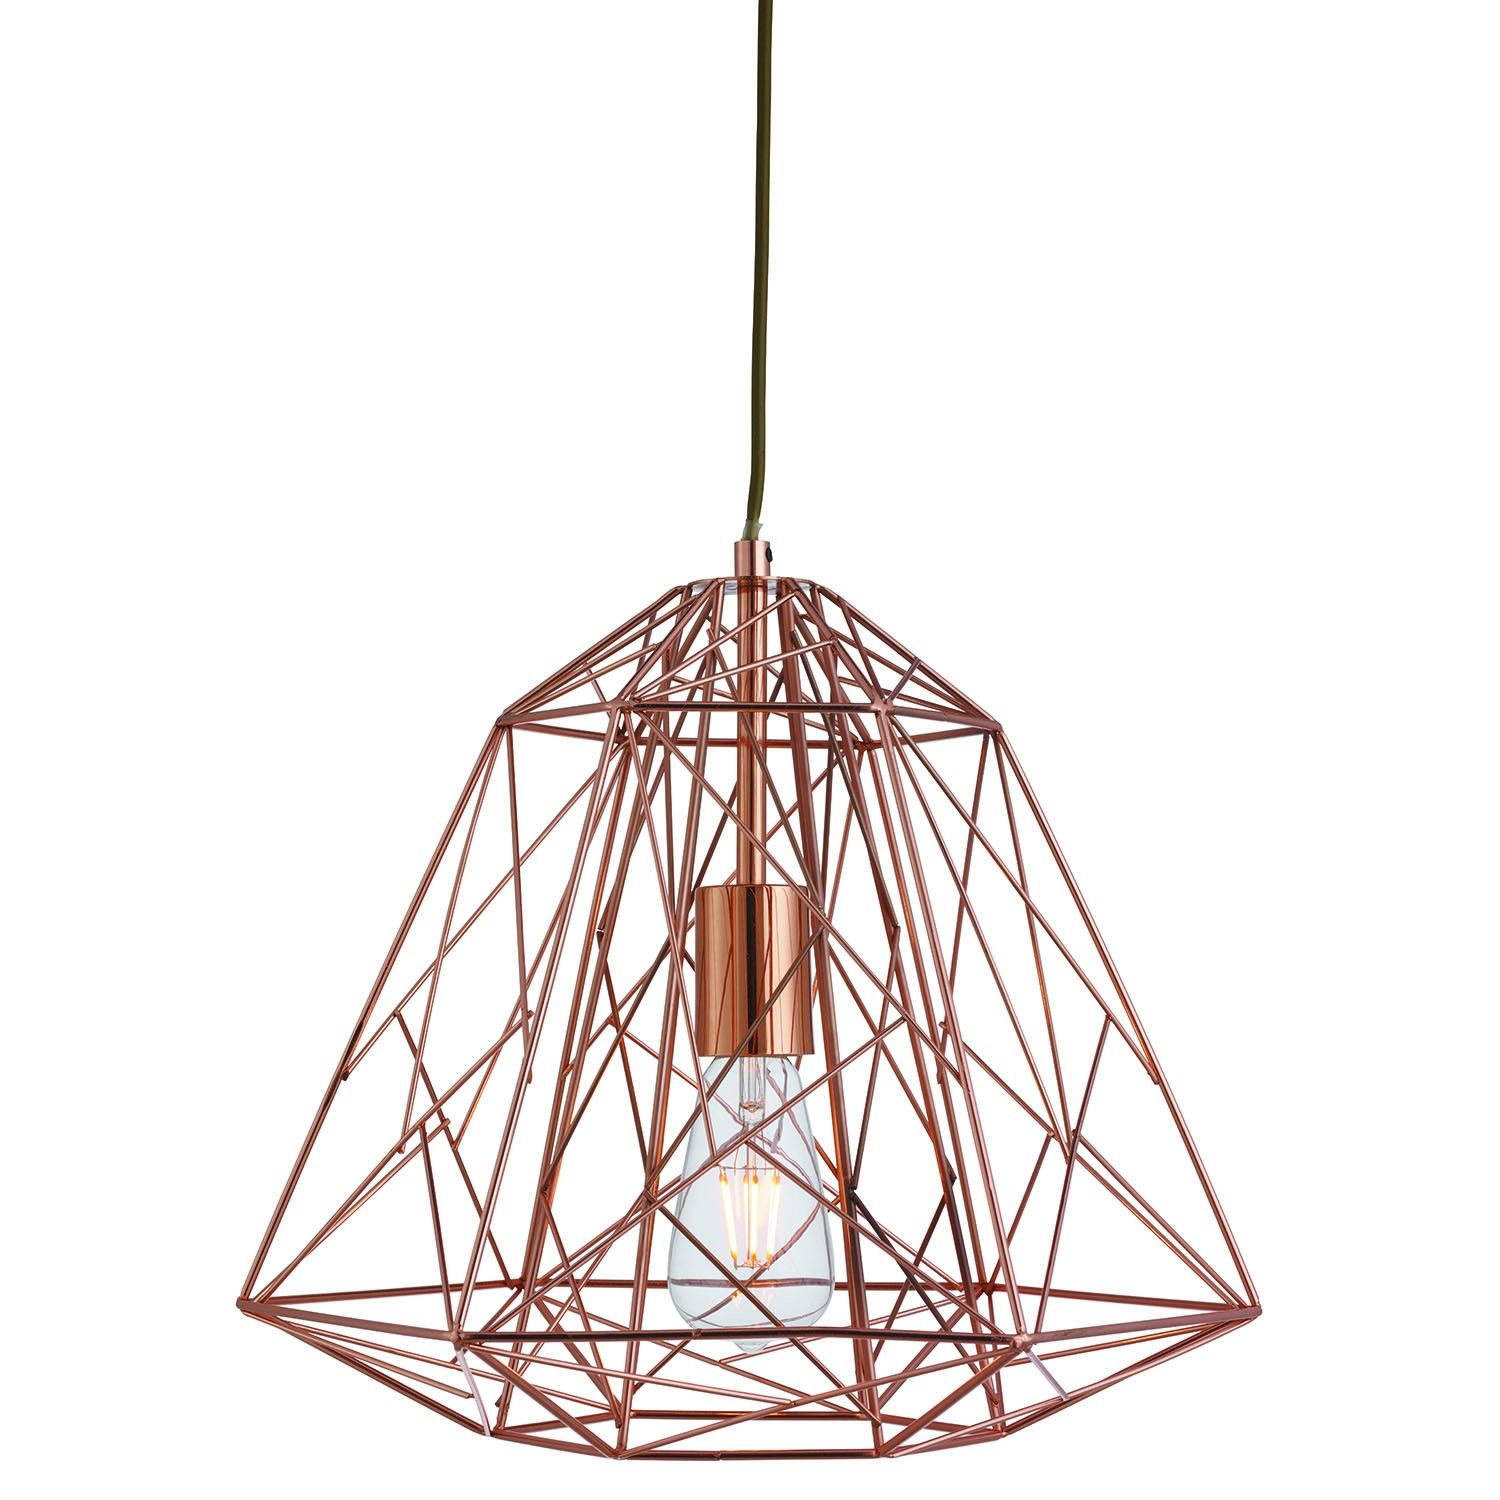 Searchlight Frame Light Ceiling Lamp Shade Shiny Copper L Cage Pendant Light Copper Pendant Lights Frame Pendant Light